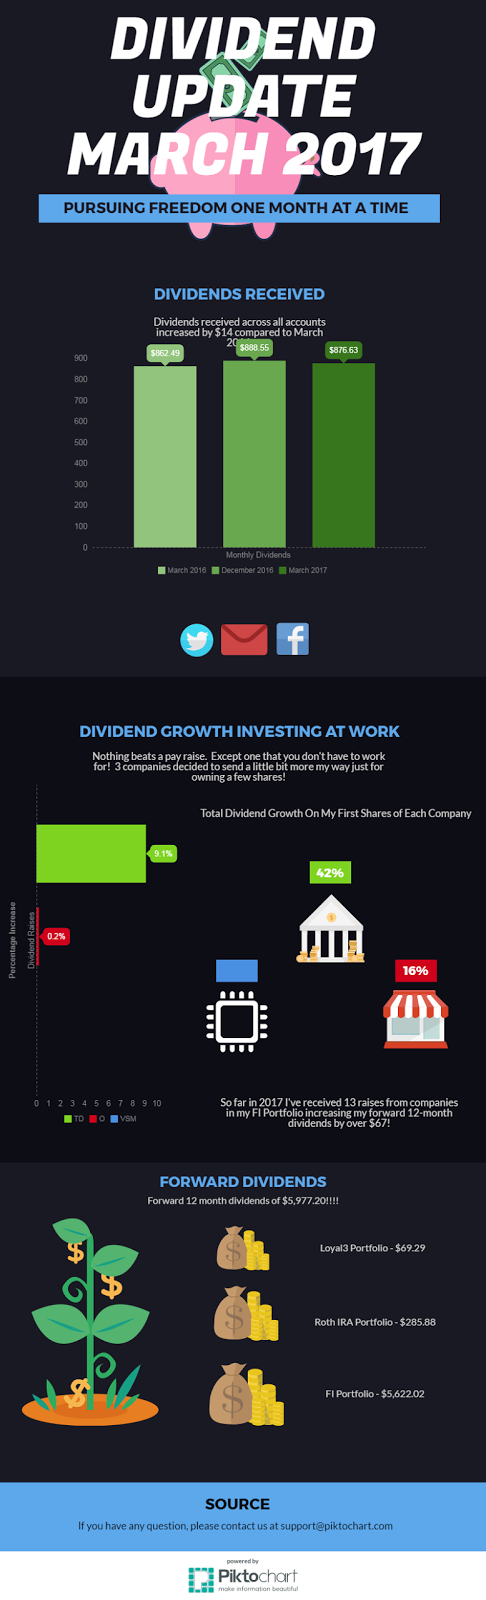 dividend growth investing, dividends, stocks, investing, financial independence